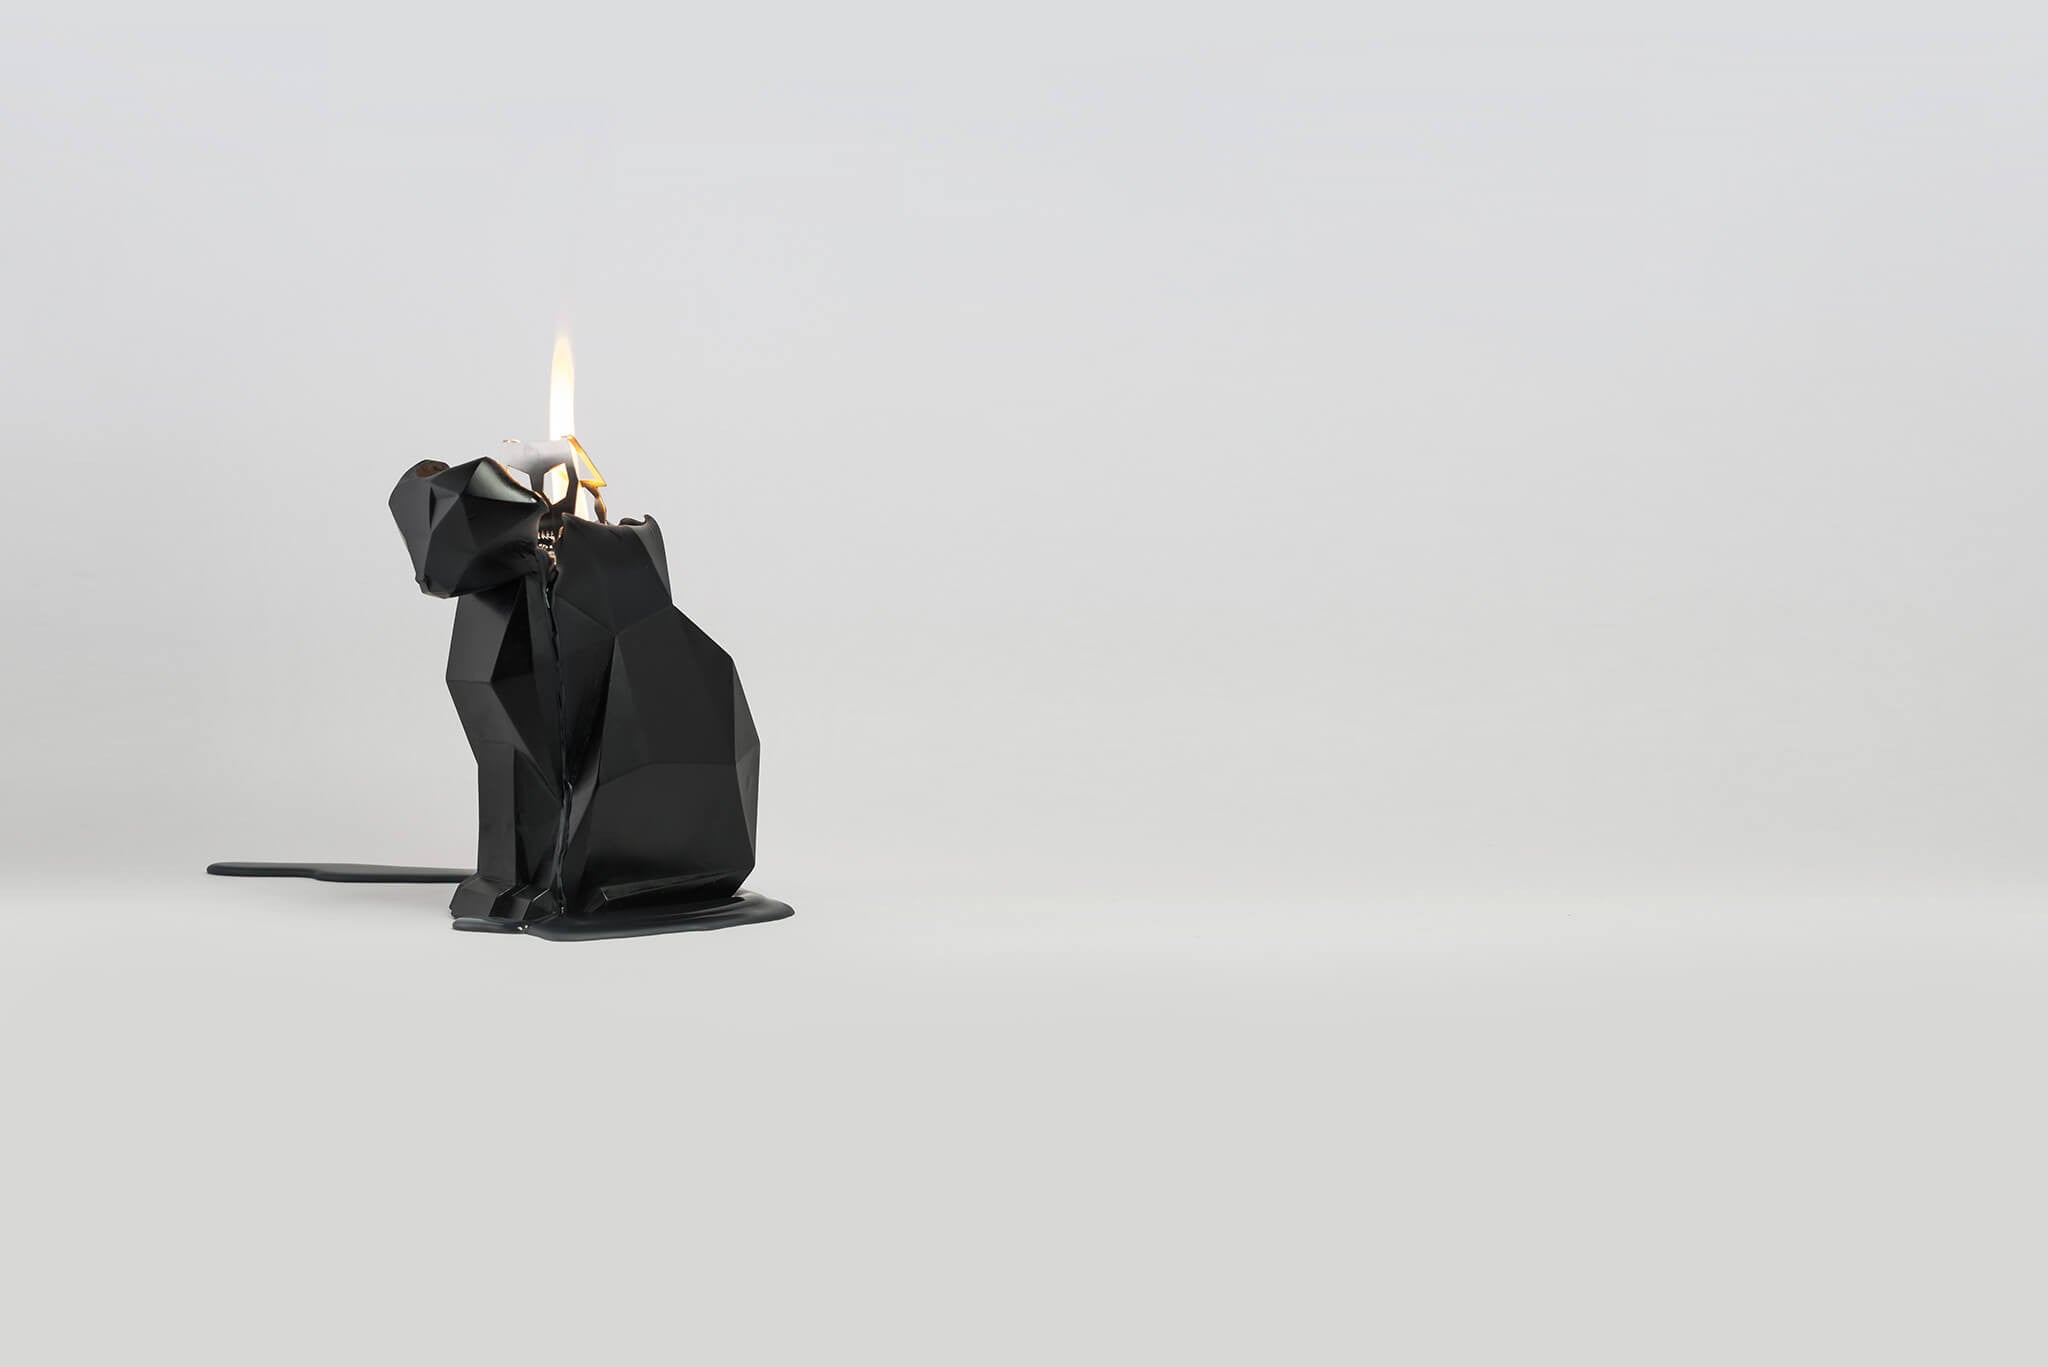 Side view of burning black kisa the cat pyropey candle. Her head is starting to melt.